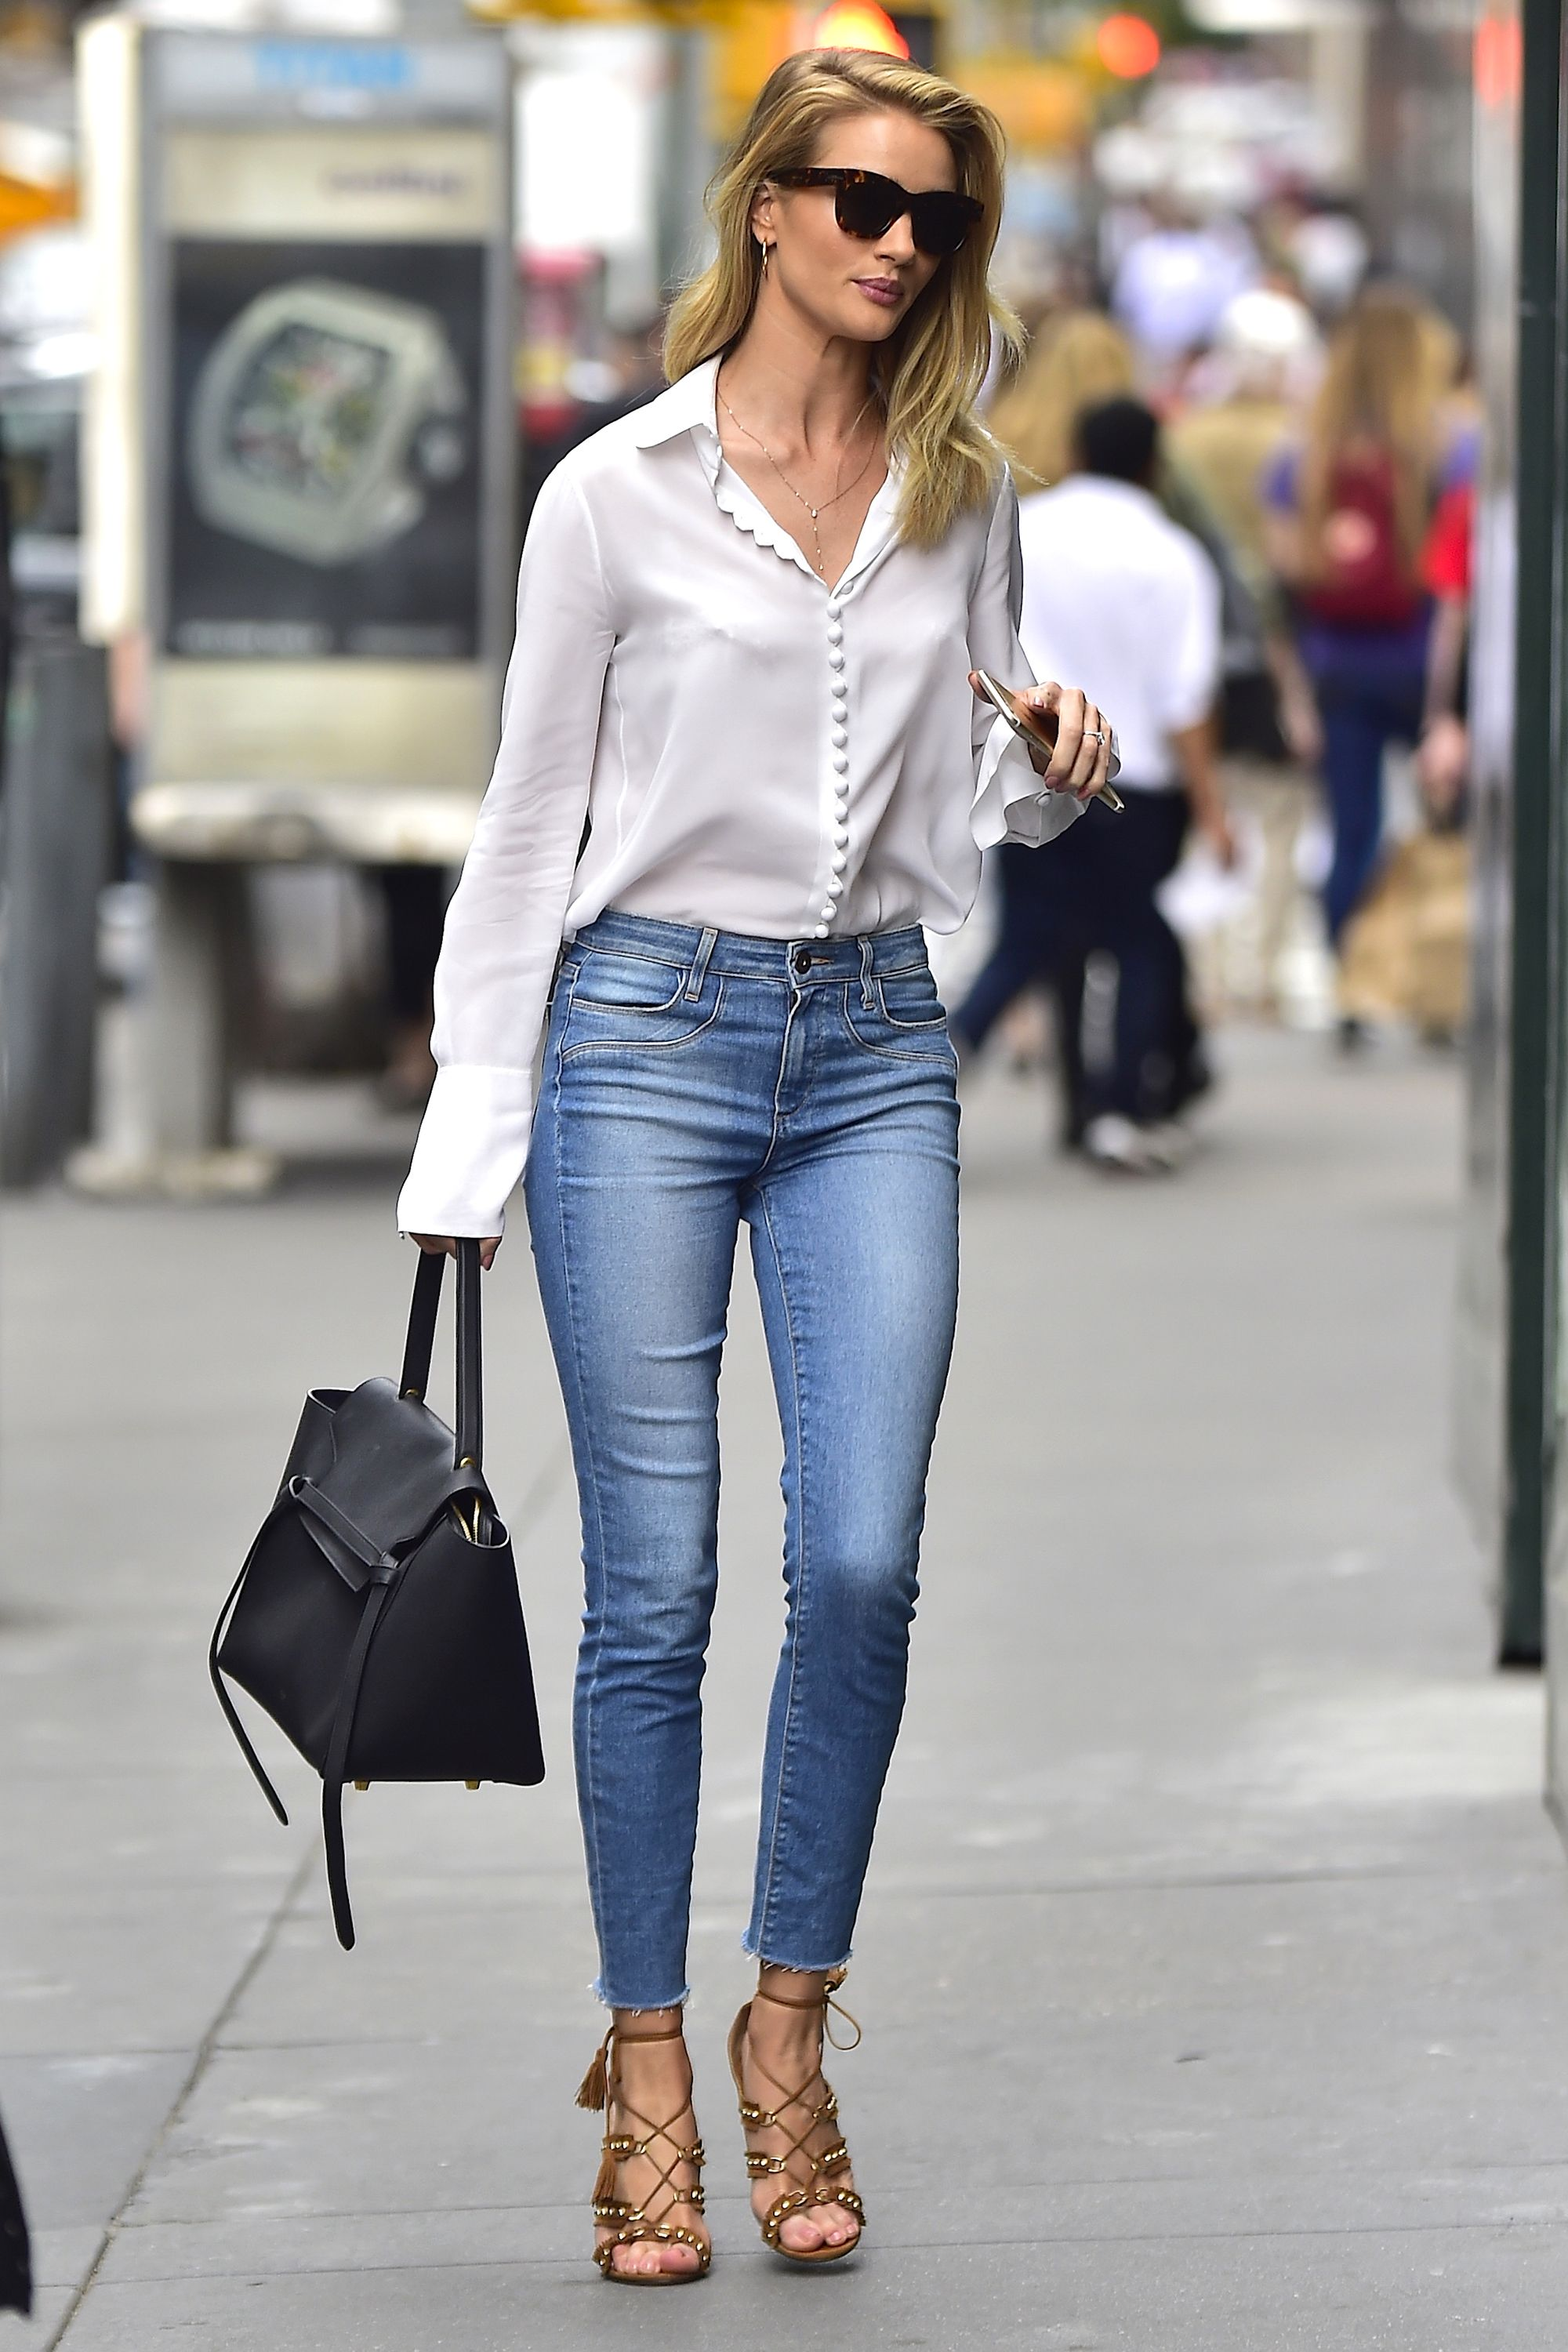 594b2be84bd 50+ Best Jeans for Women - Celebrity Jeans We Love